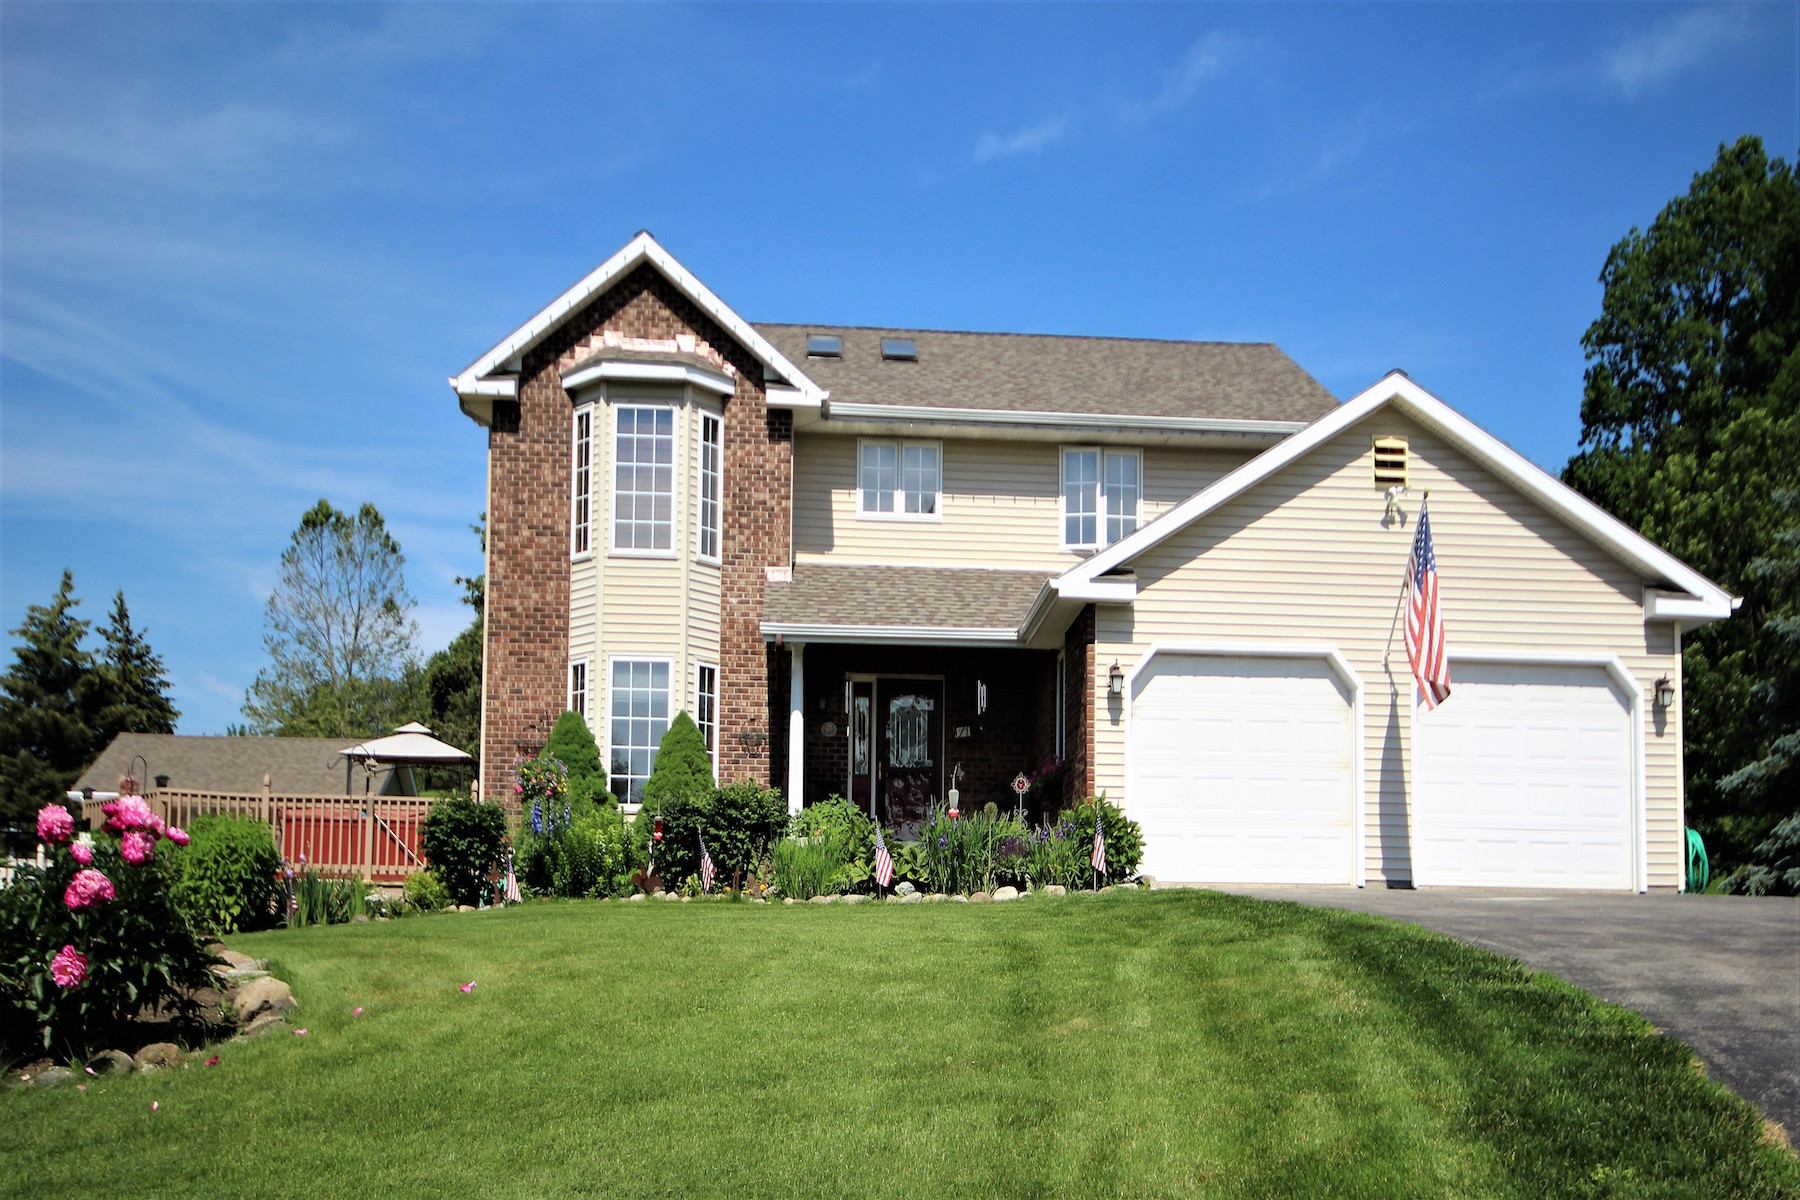 Single Family Home for Sale at Custom Jewel On A Hill With Fireworks! 249 Kaydeross Av East, Saratoga Springs, New York, 12866 United States